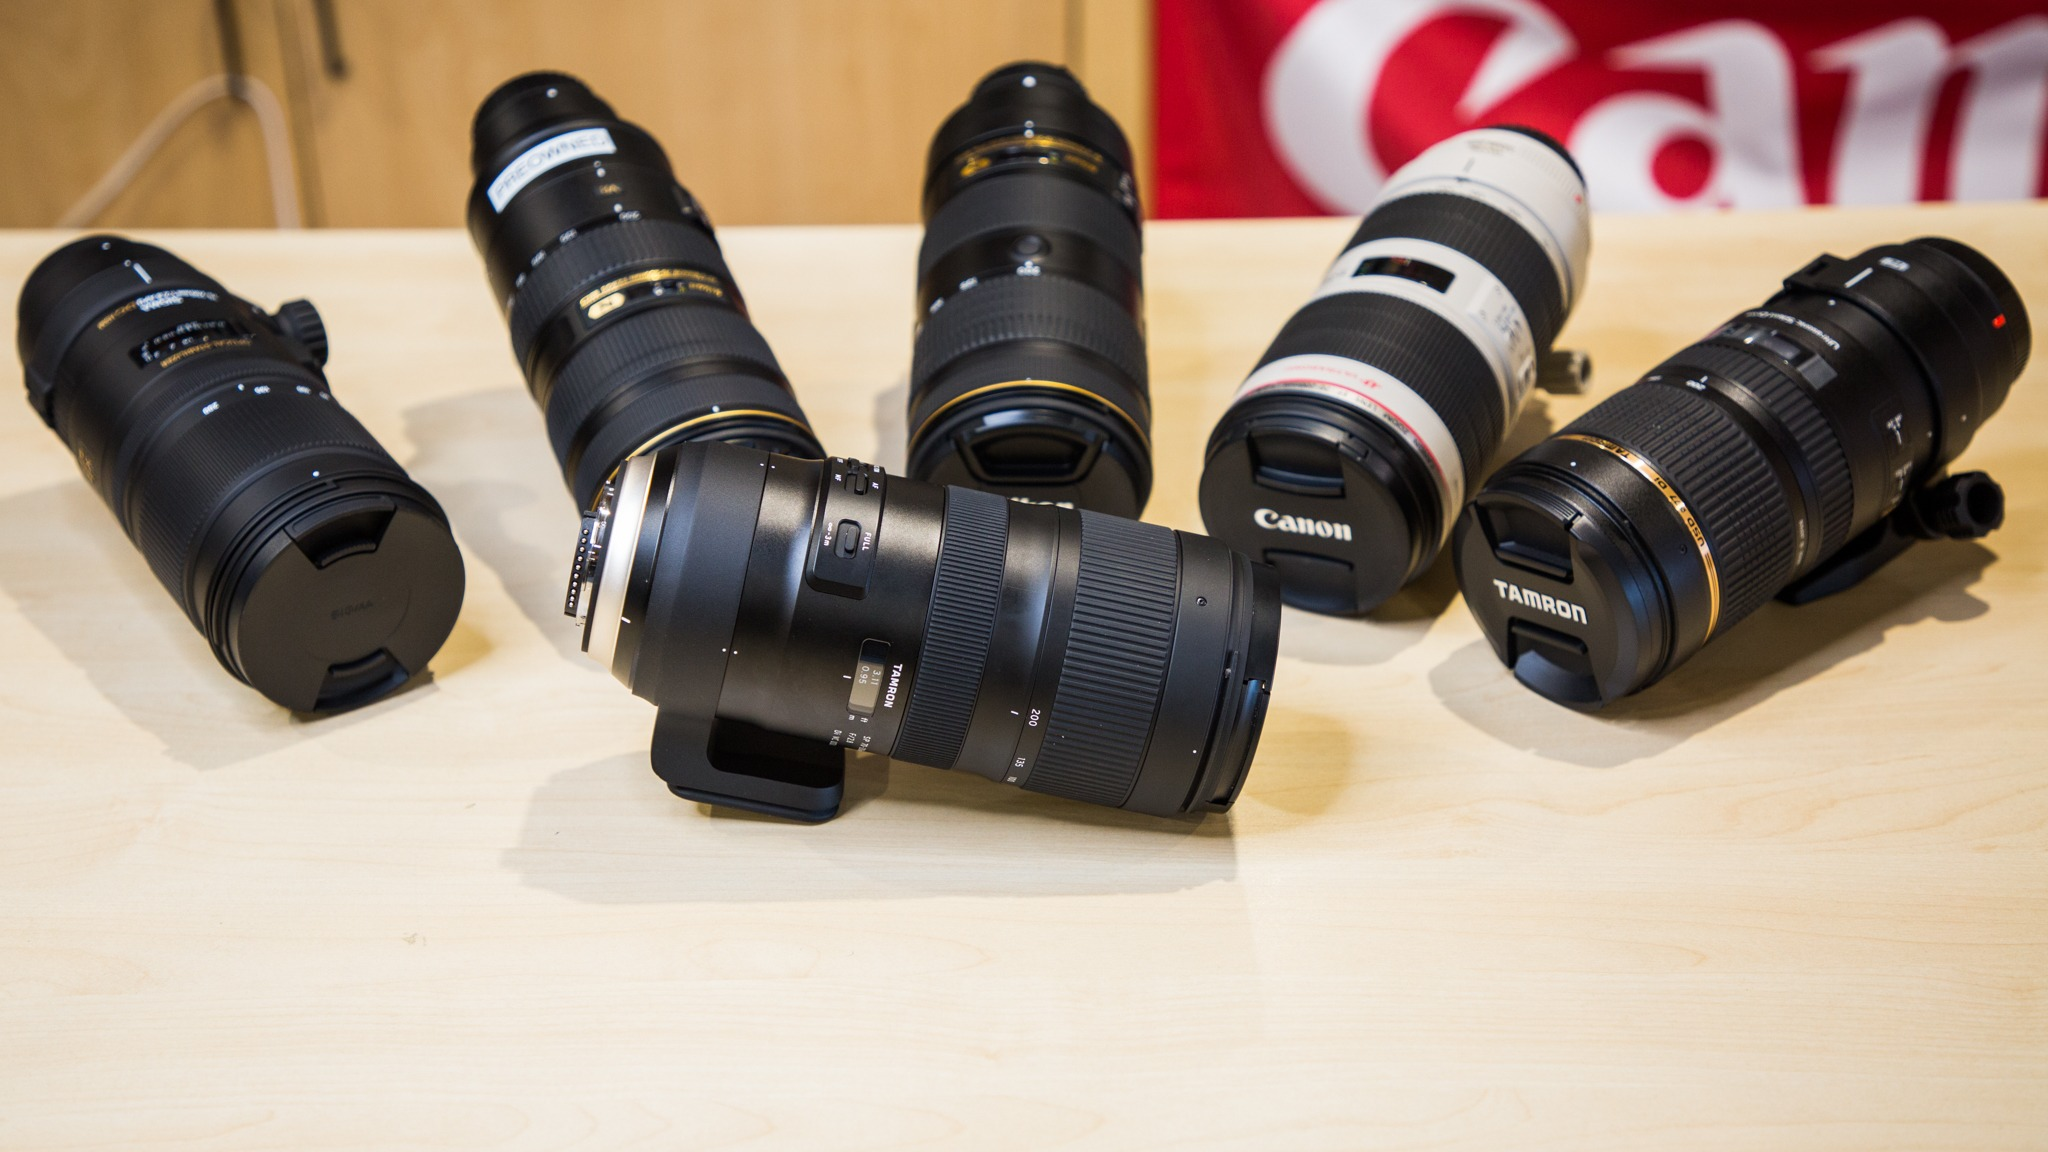 Tamron 70-200 f/2.8 Di VC USD G2 : A first look